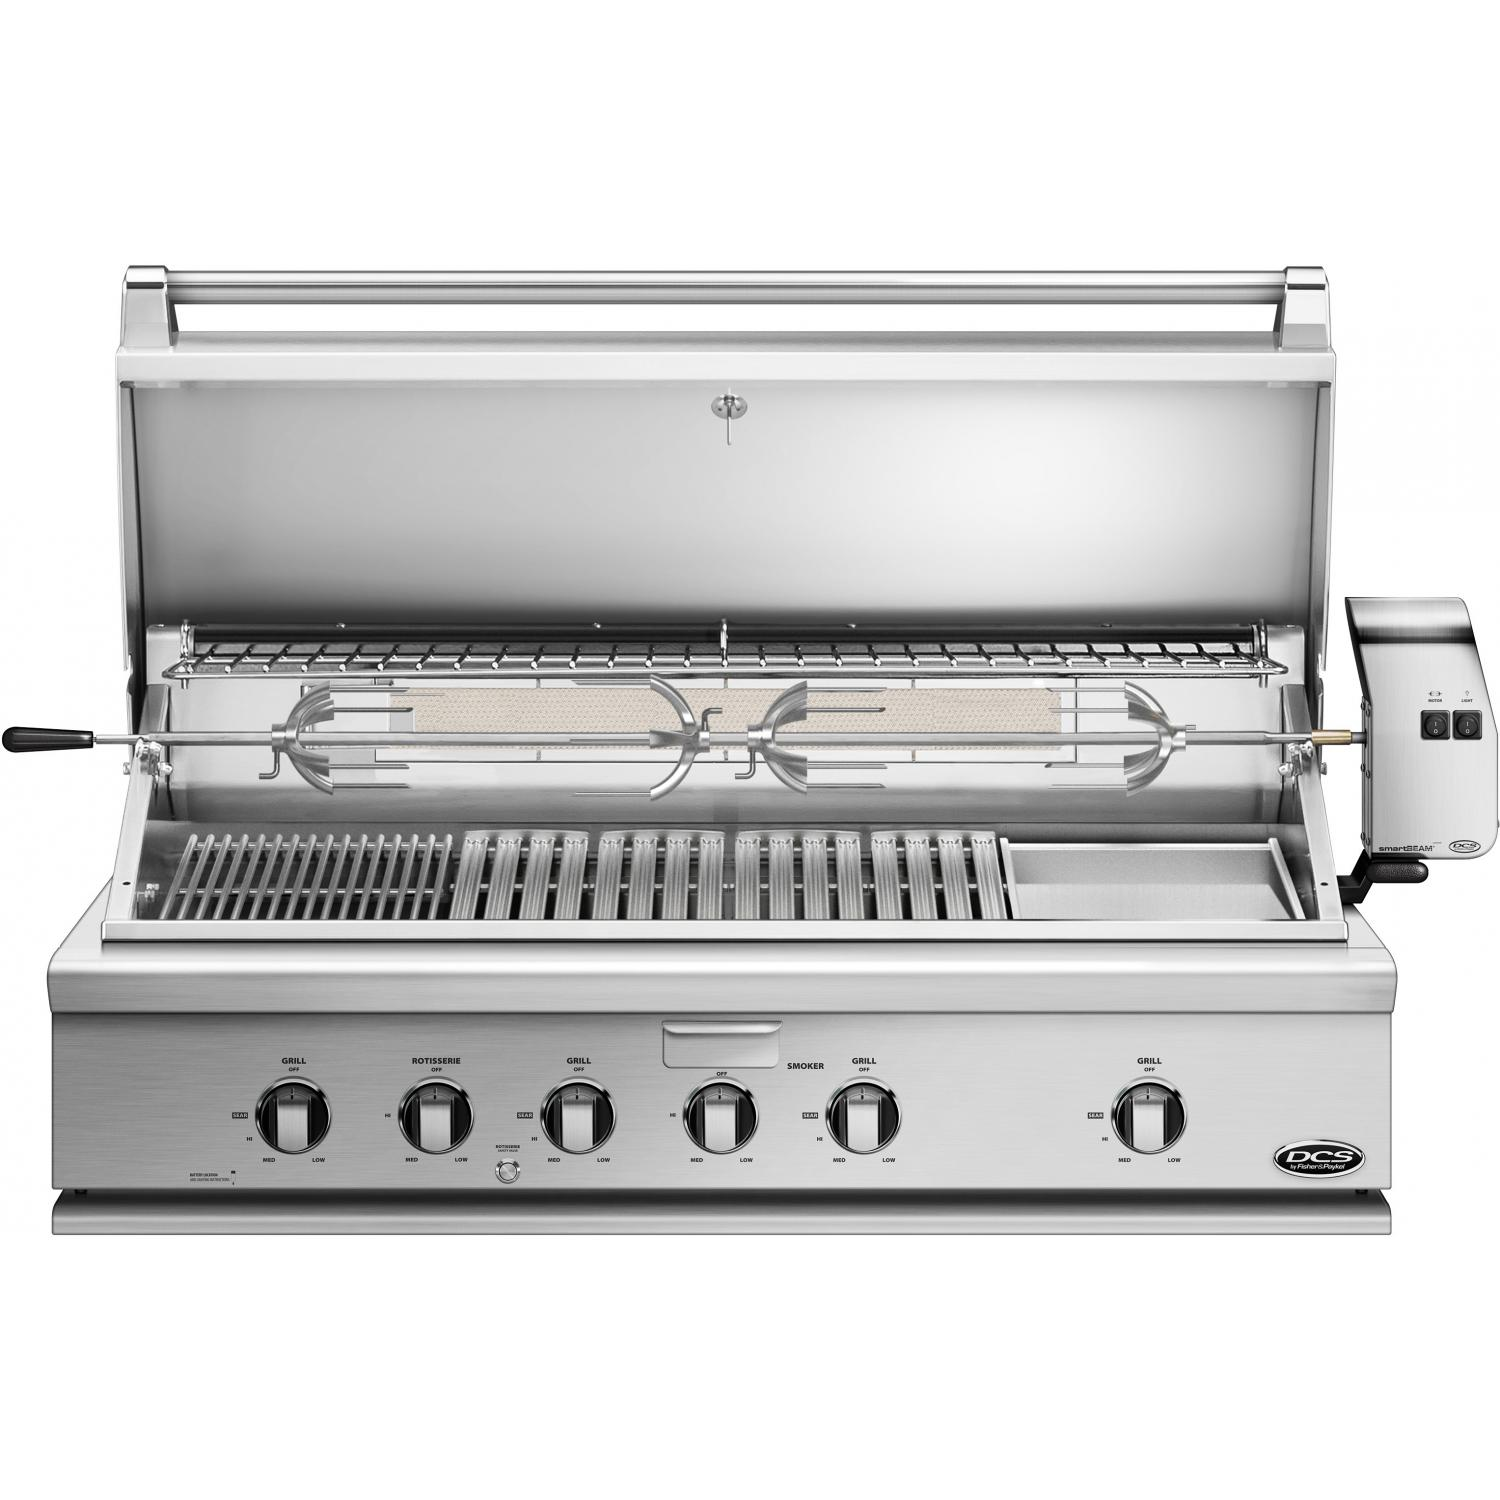 Dcs 48 Grill For Built In With Rotisserie Griddle